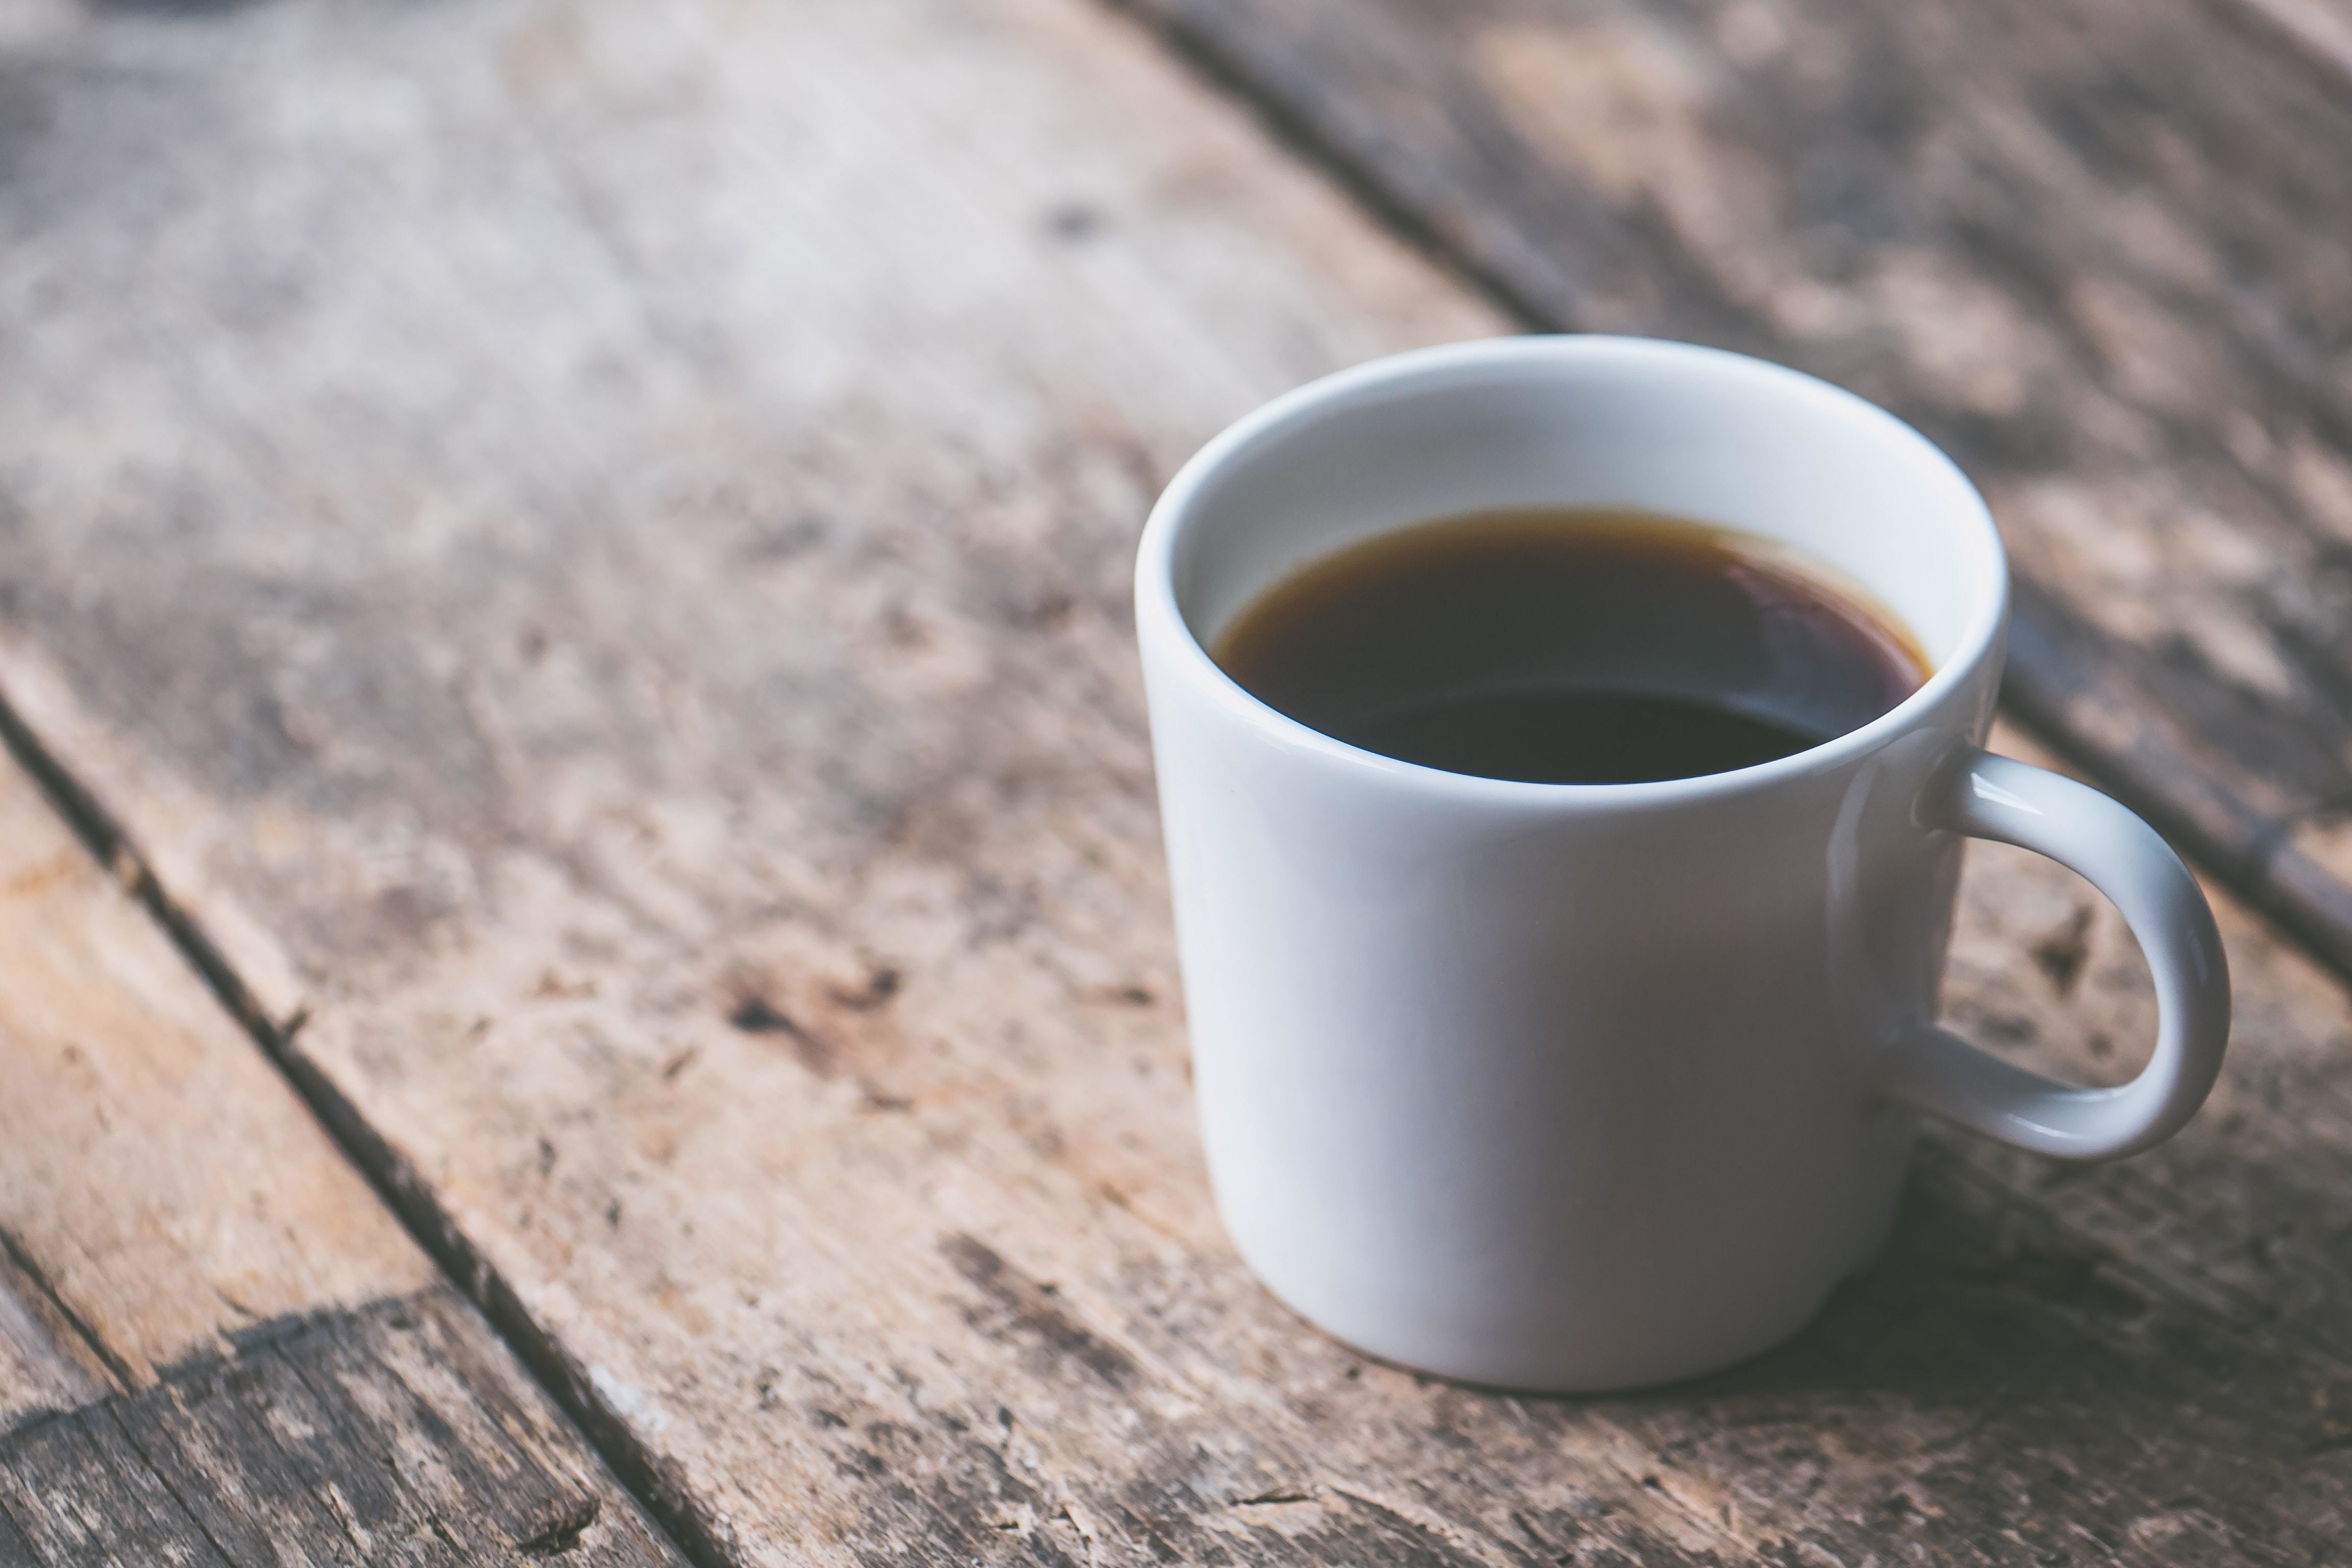 coffee, pictured here, is one of the crops that is being seriously affected by climate change